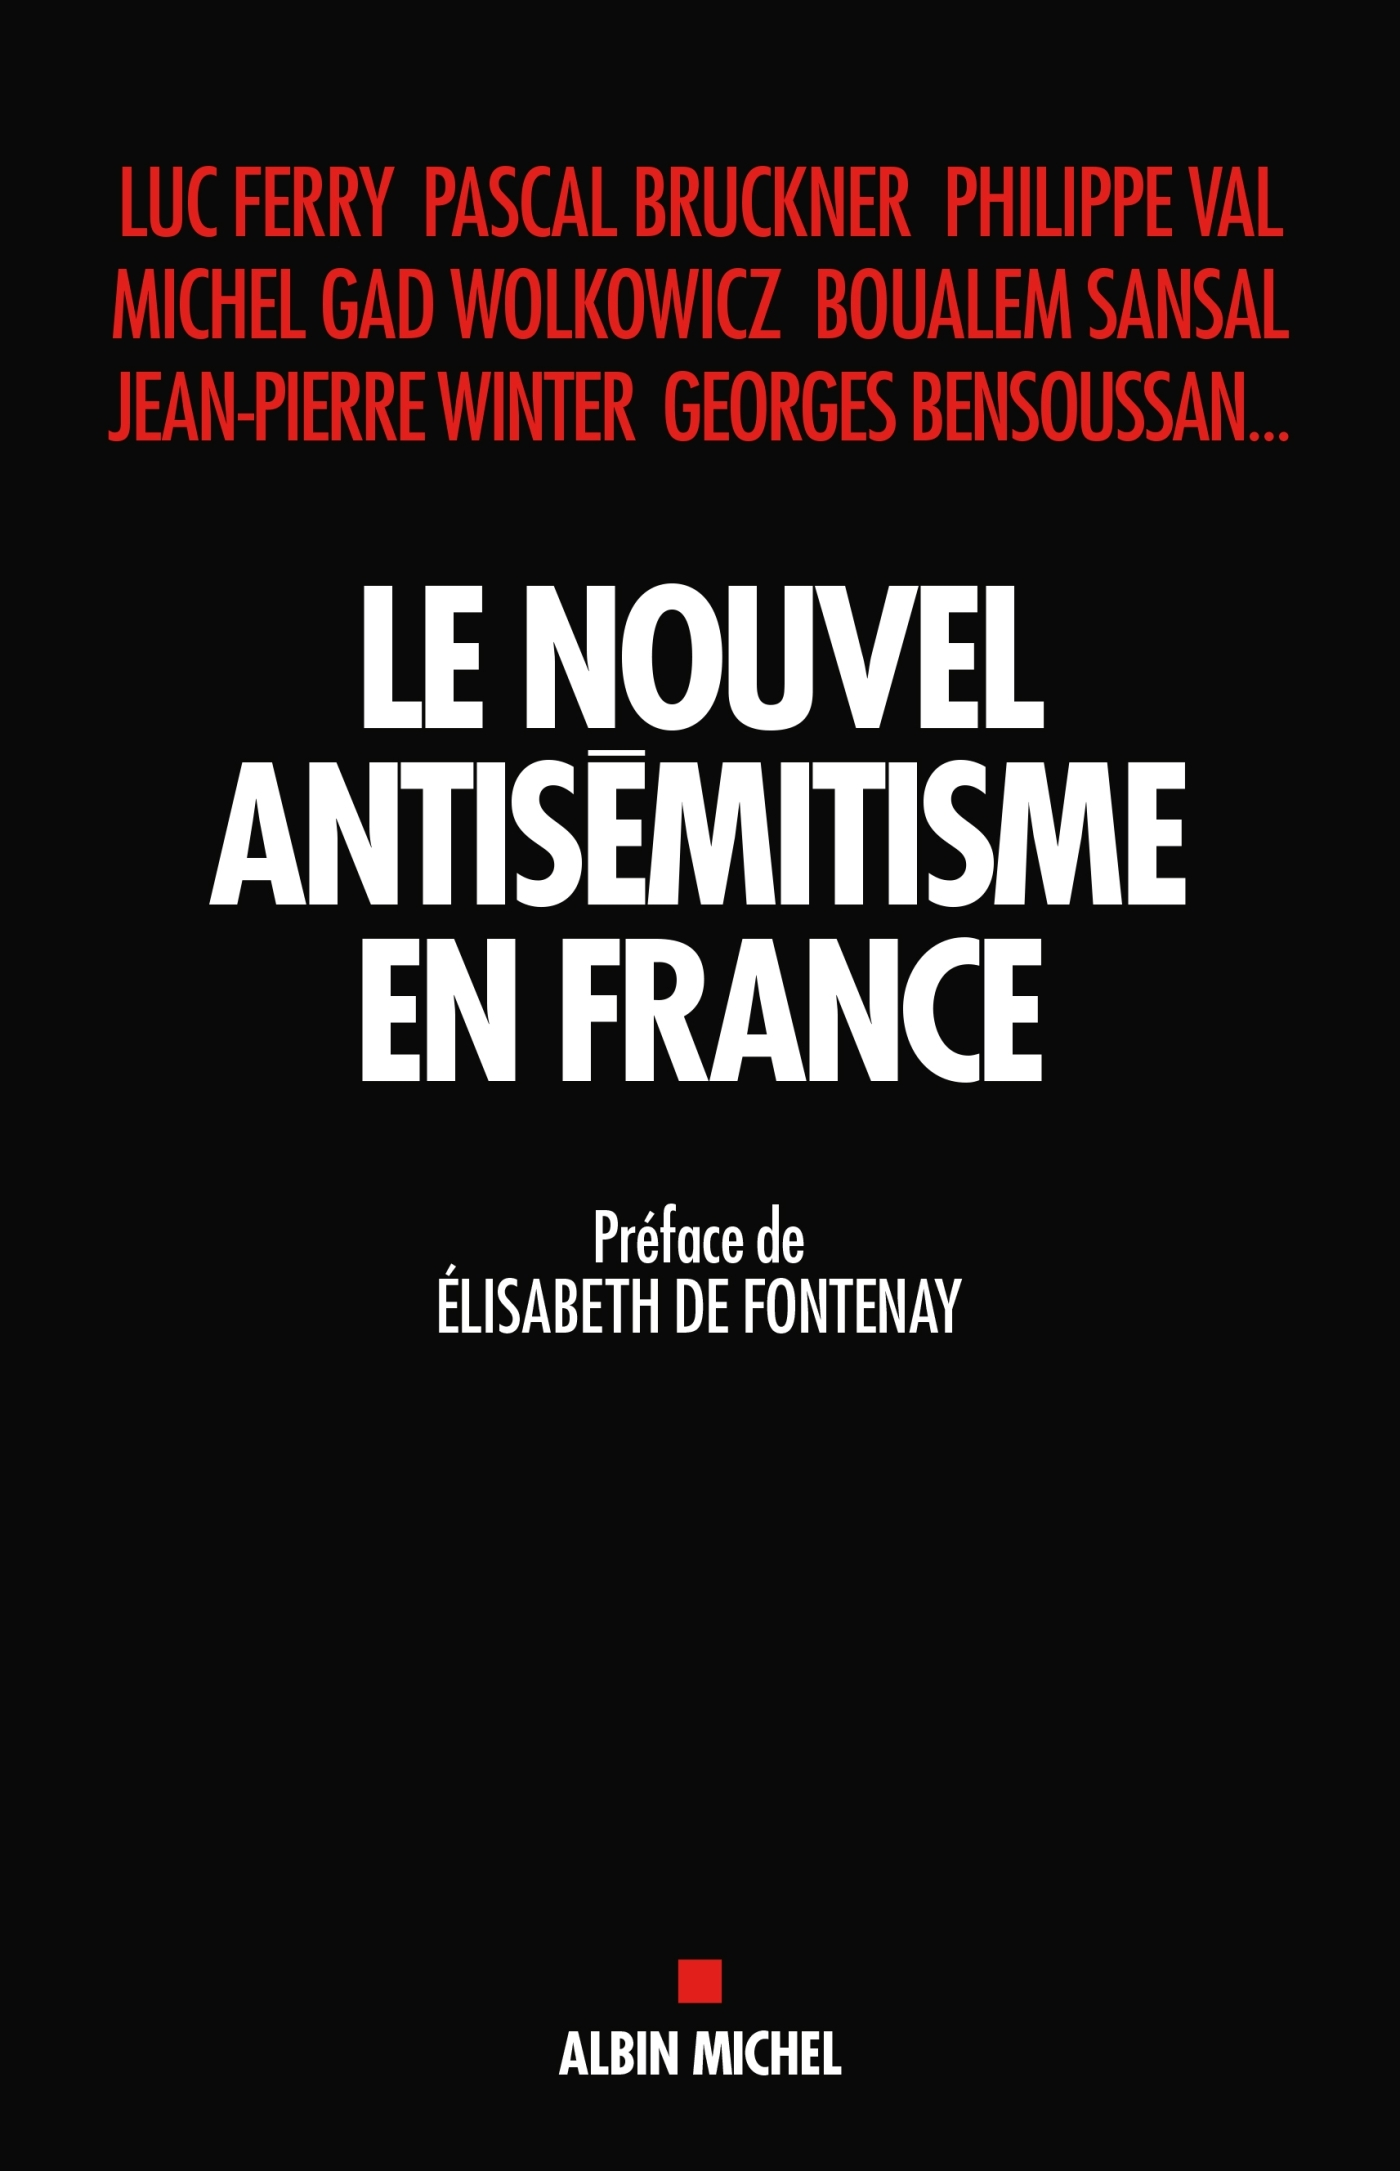 LE NOUVEL ANTISEMITISME EN FRANCE